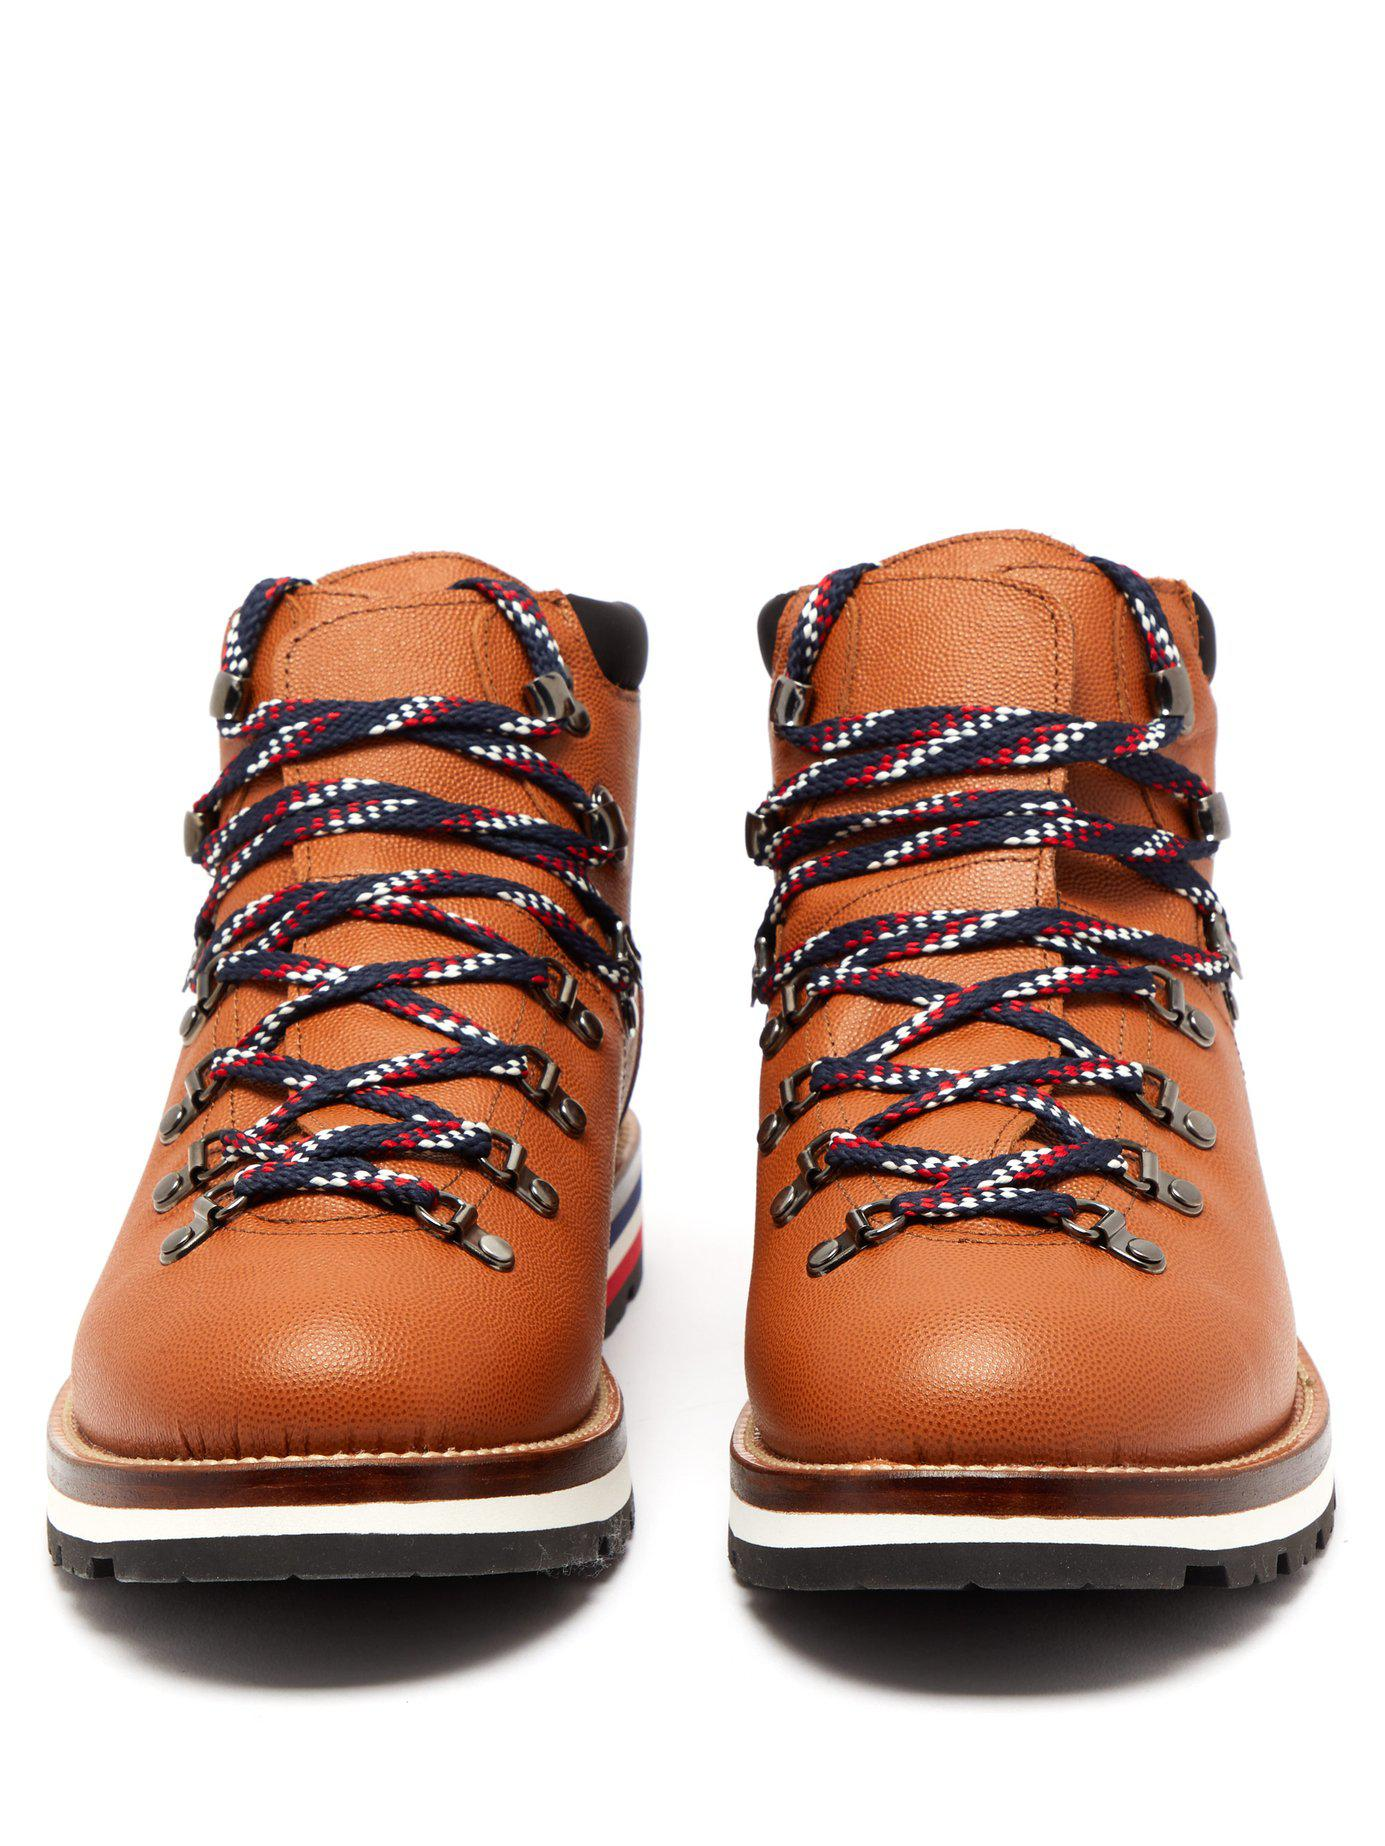 0b7236c75404 Moncler - Brown Peak Lace Up Leather Boots for Men - Lyst. View fullscreen